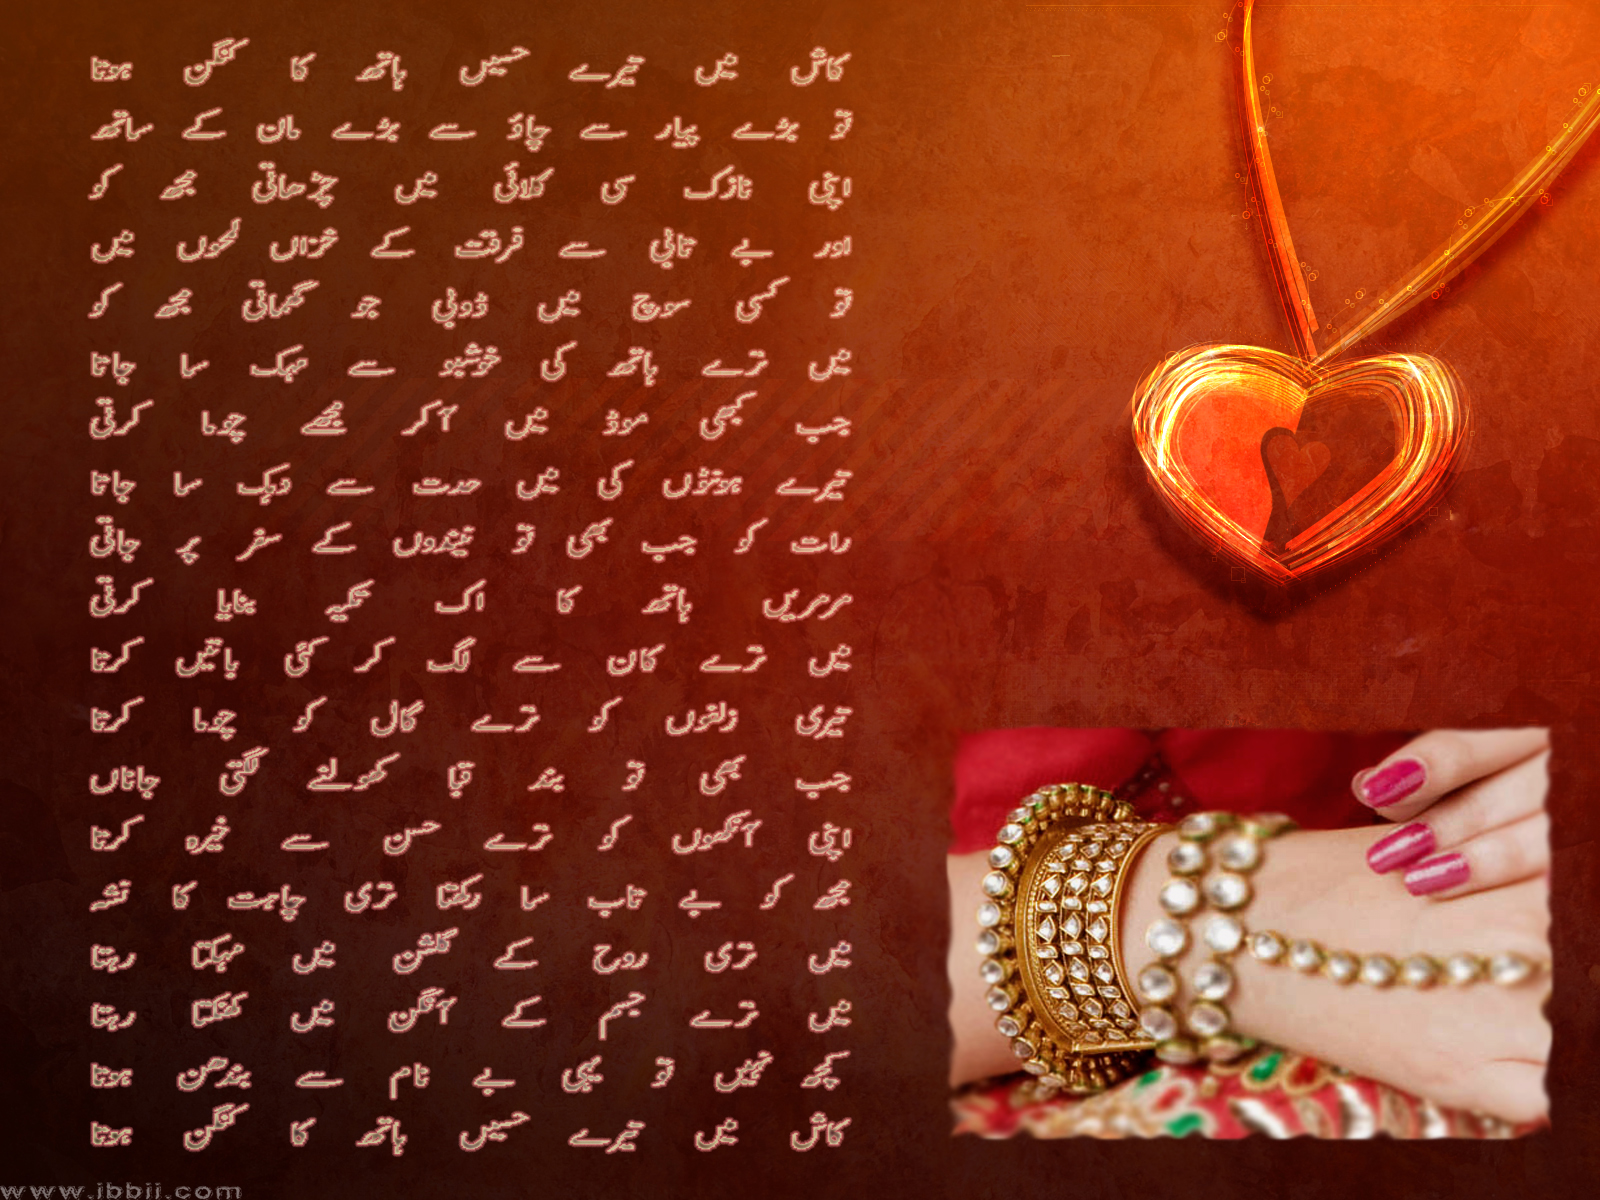 Best Urdu Poetry Ghazals Poems SMS - Lovely and Beautuful